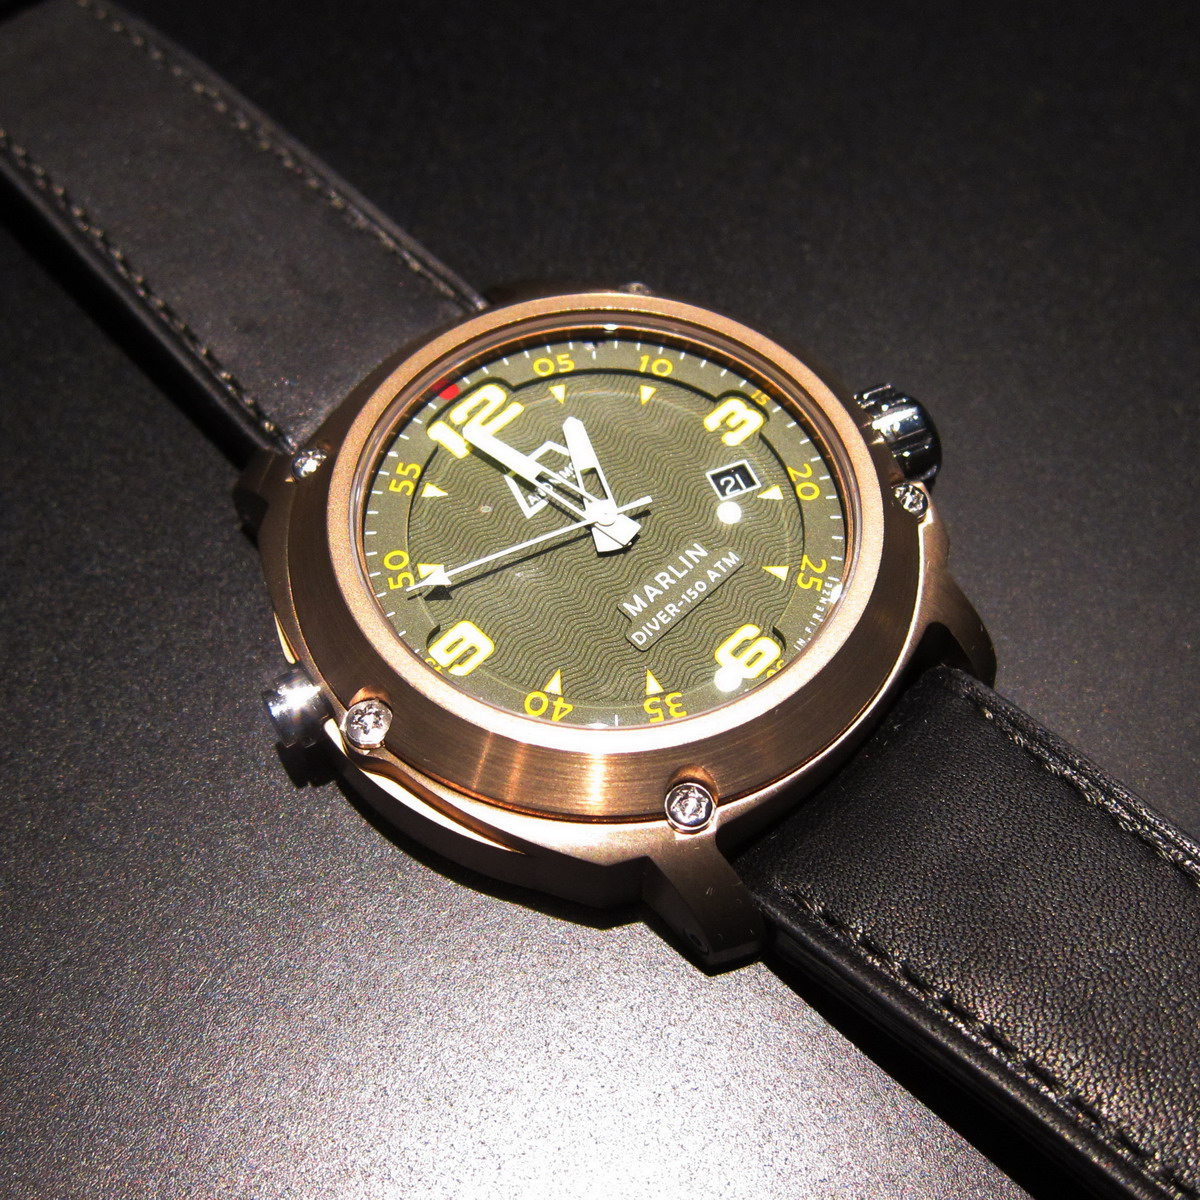 Bronze or tanned watches - Bronze dive watch ...